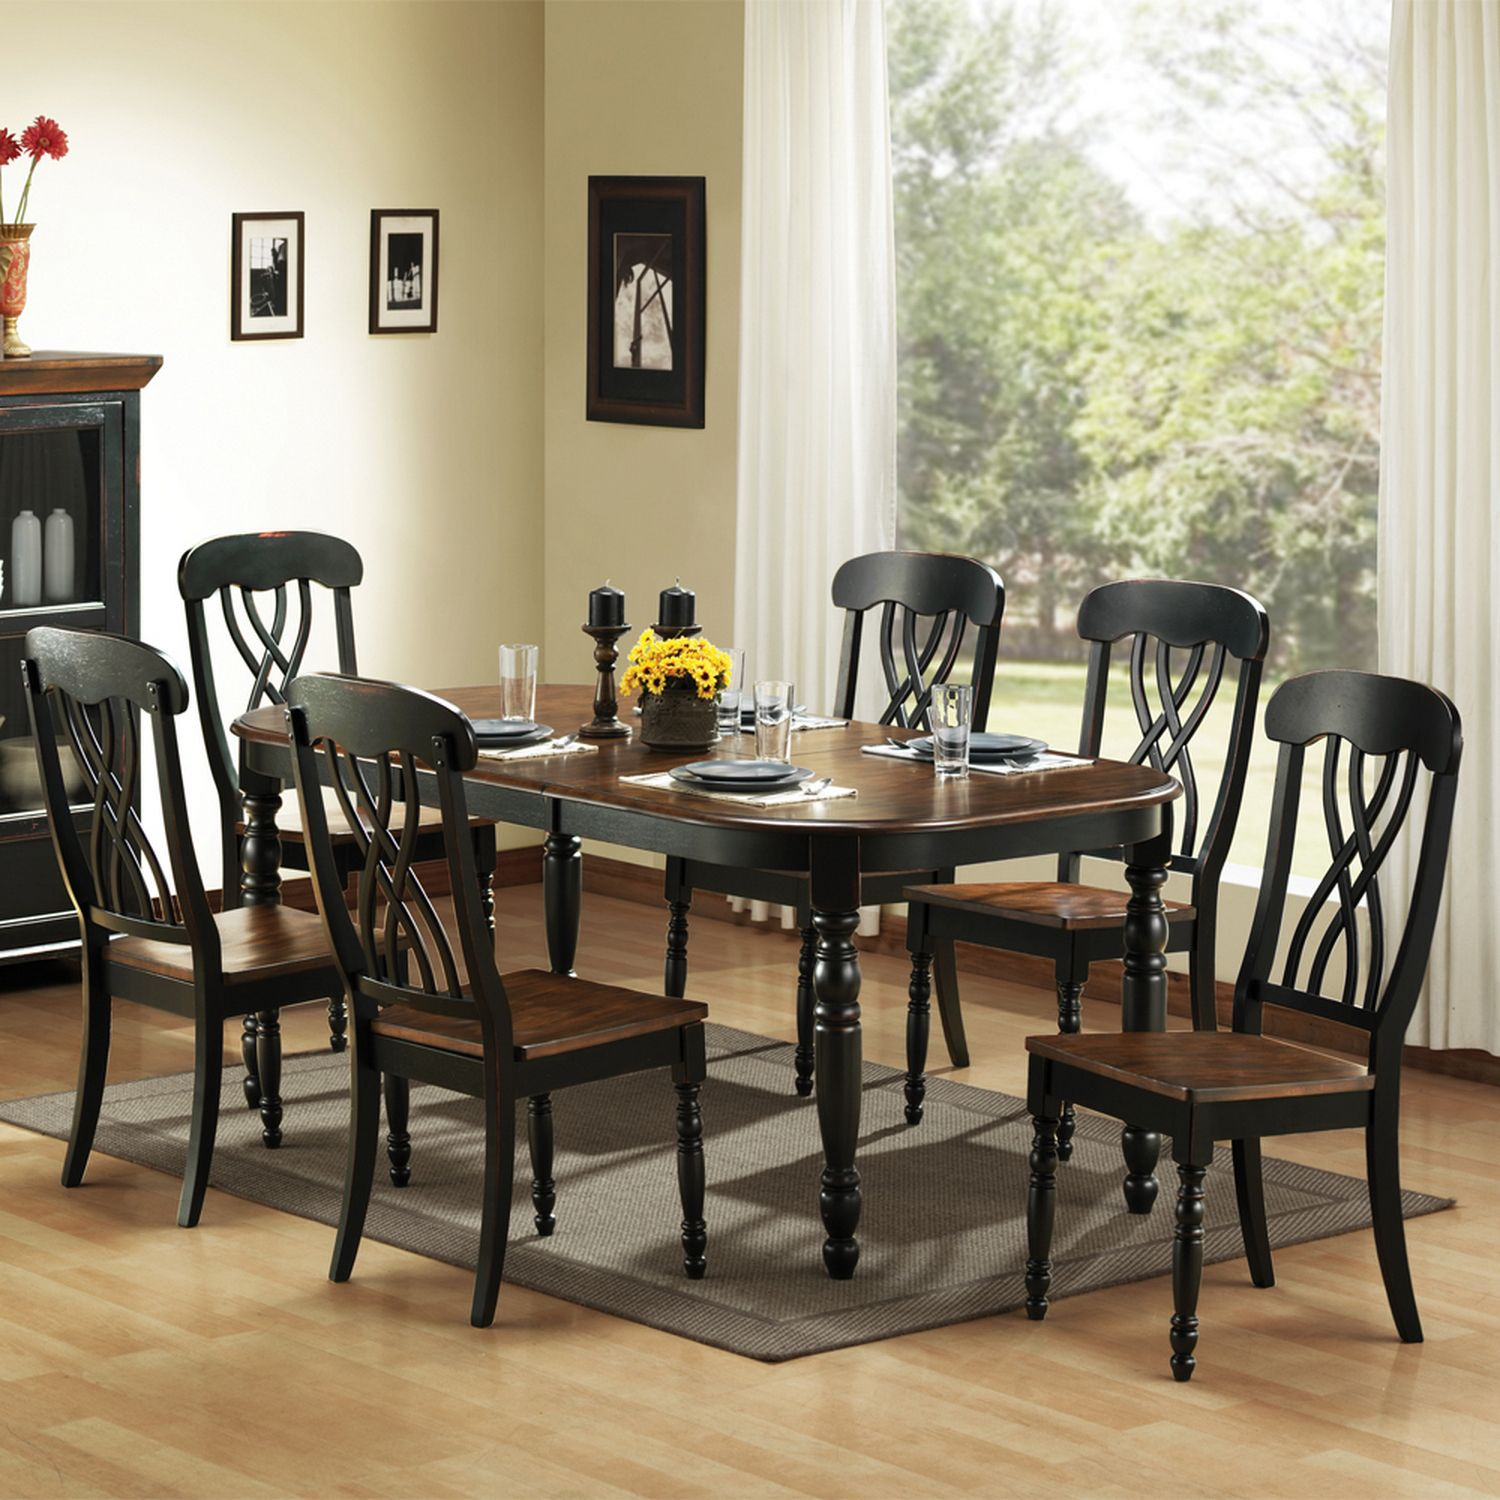 extendable dining table u0026 chair set